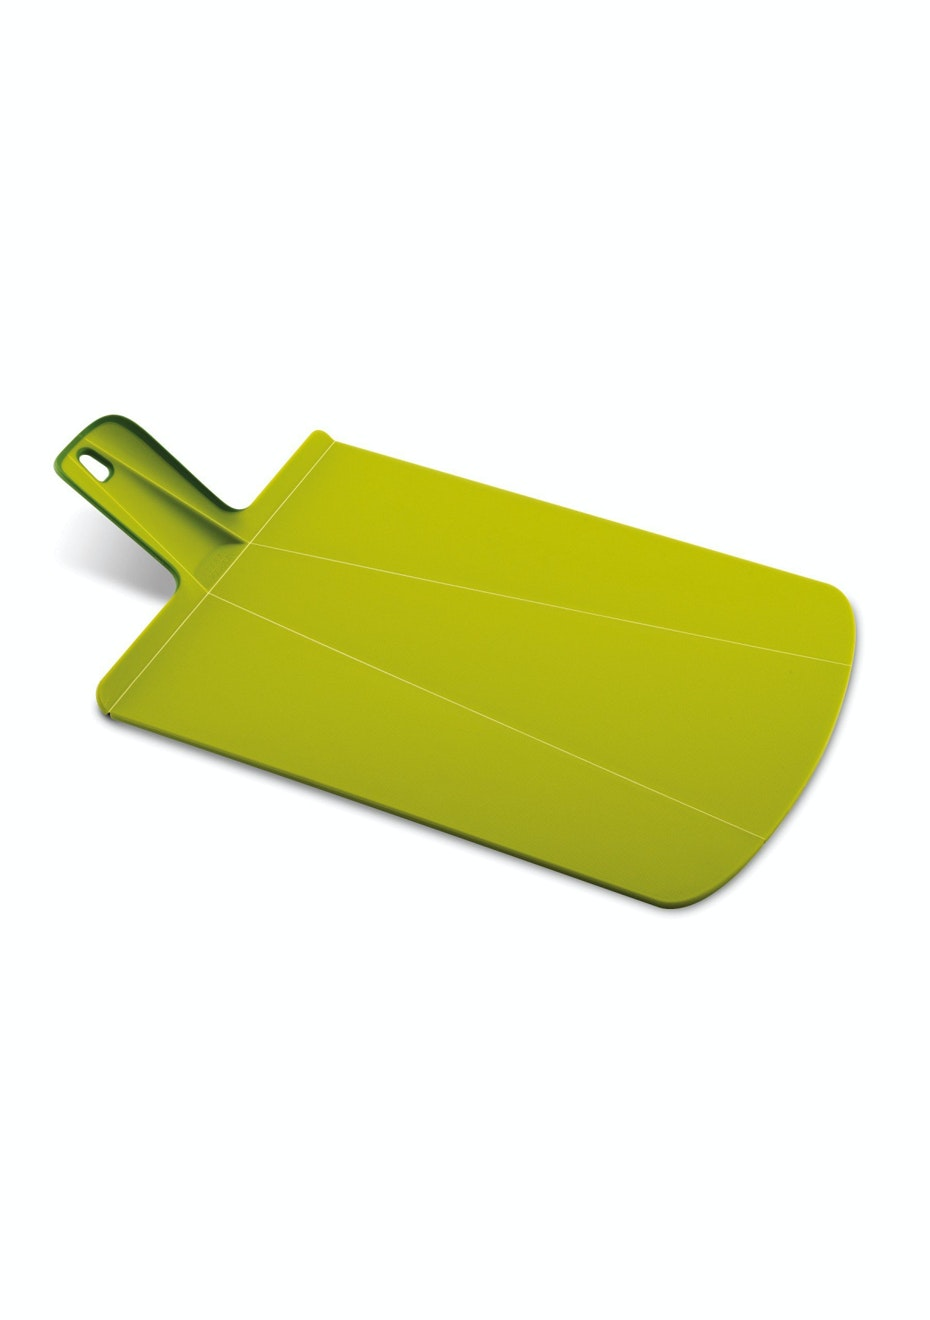 Joseph Joseph - Chop 2 Pot Plus - Mini